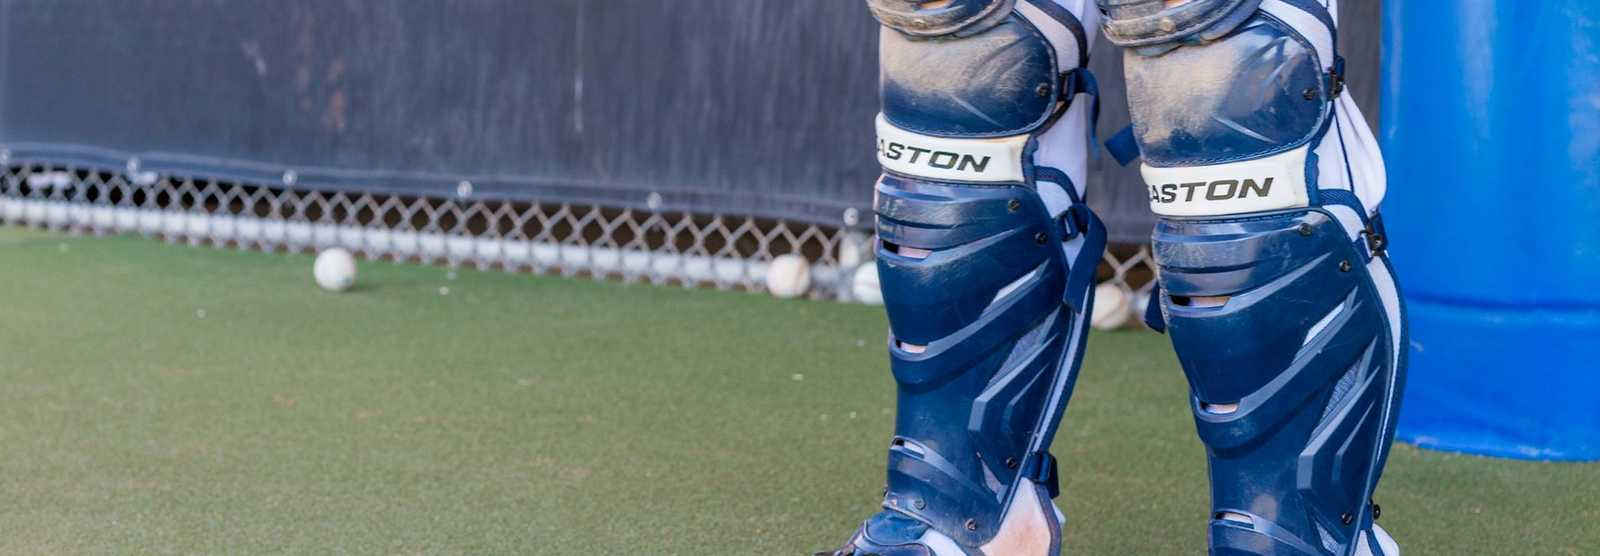 baseball-catchers-leg-guards